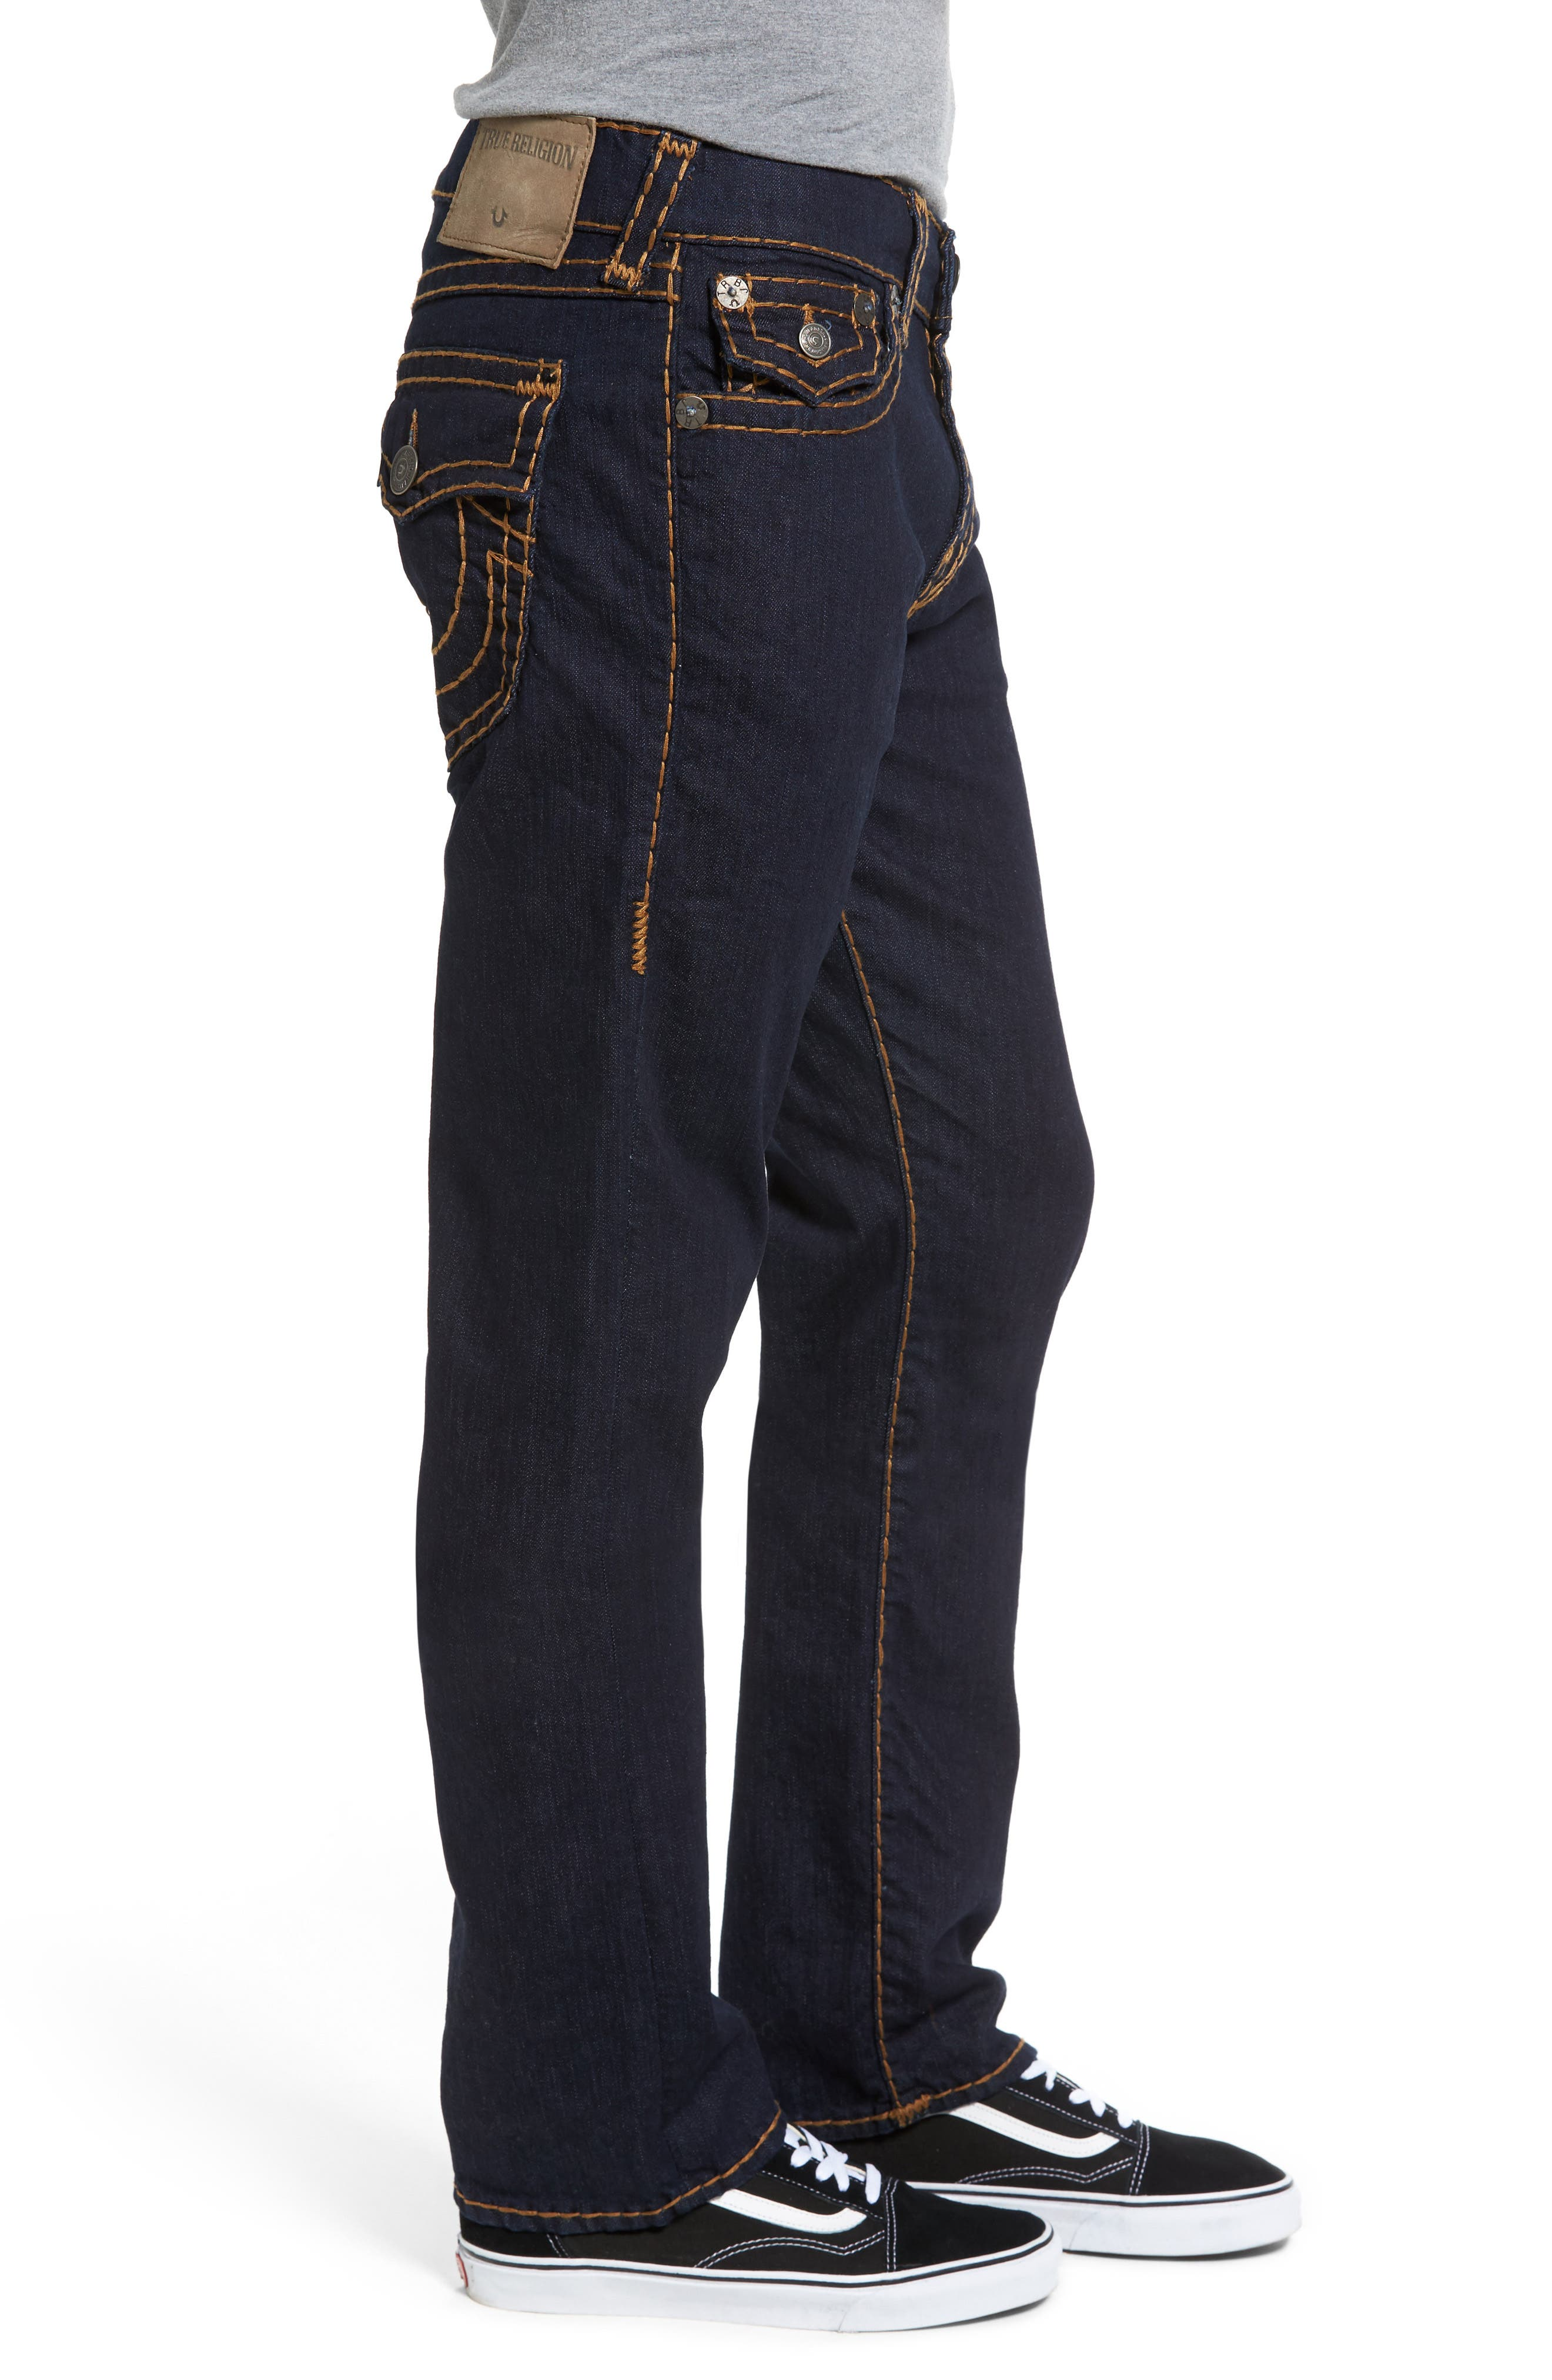 Ricky Relaxed Fit Jeans,                             Alternate thumbnail 3, color,                             2S Body Rinse